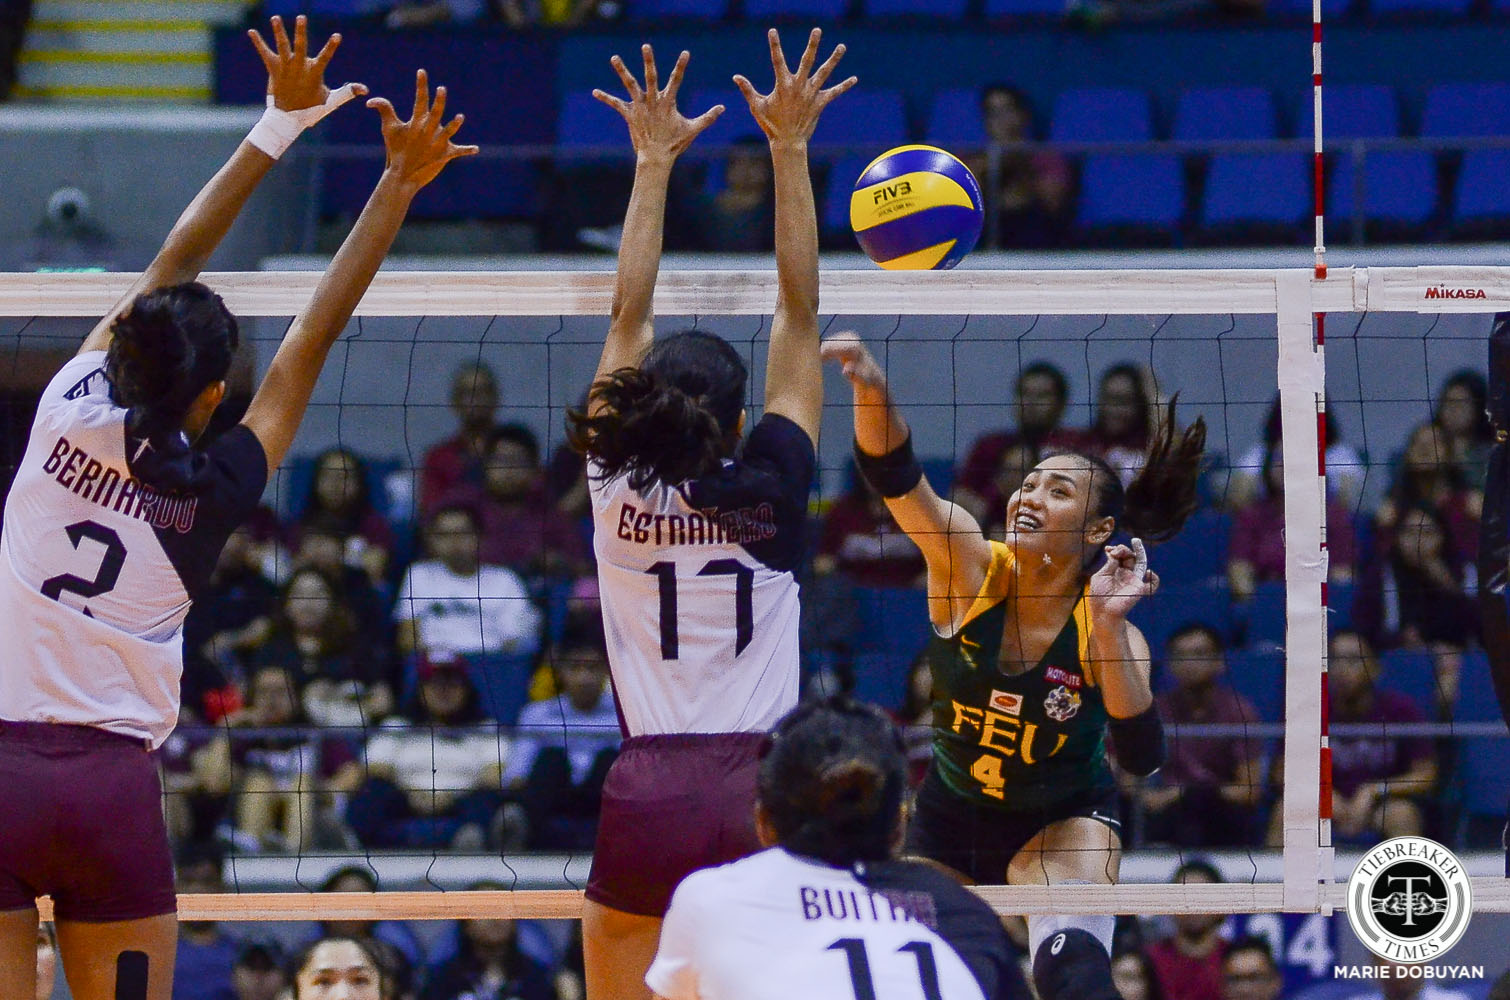 Tiebreaker Times FEU Lady Tamaraws earn convincing win over UP for share of 3rd FEU News UAAP UP Volleyball  UP Women's Volleyball UAAP Season 81 Women's Volleyball UAAP Season 81 Tots Carlos Kyle Negrito Justine Dorog Jerrili Malabanan Heather Guino-o Godfrey Okumu George Pascua FEU Women's Volleyball Buding Duremdes